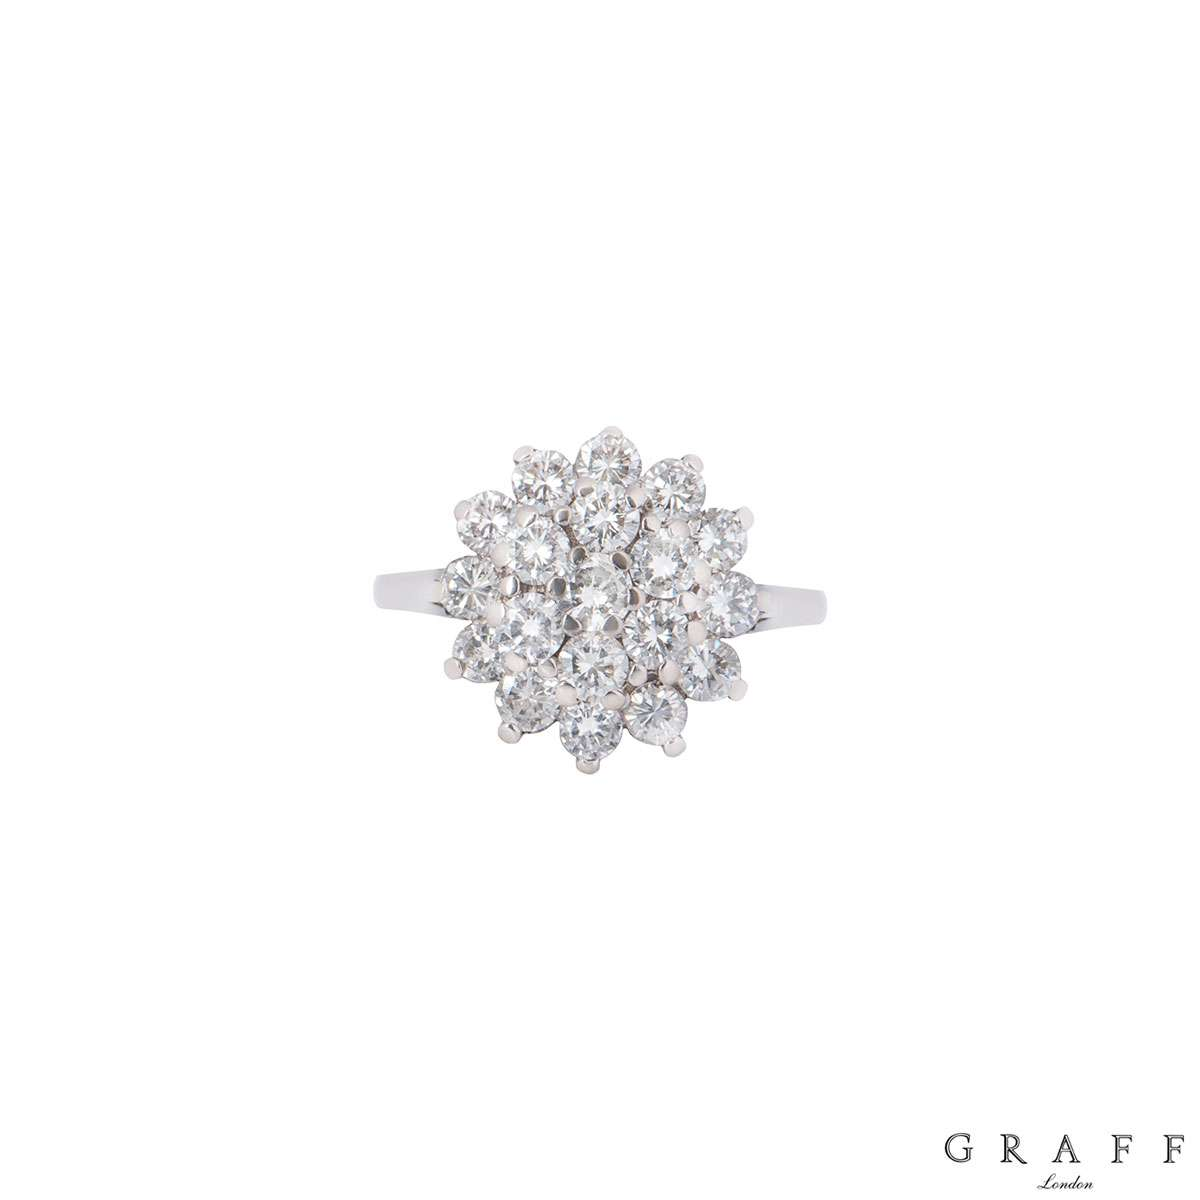 Graff White Gold Diamond Cluster Floral Ring